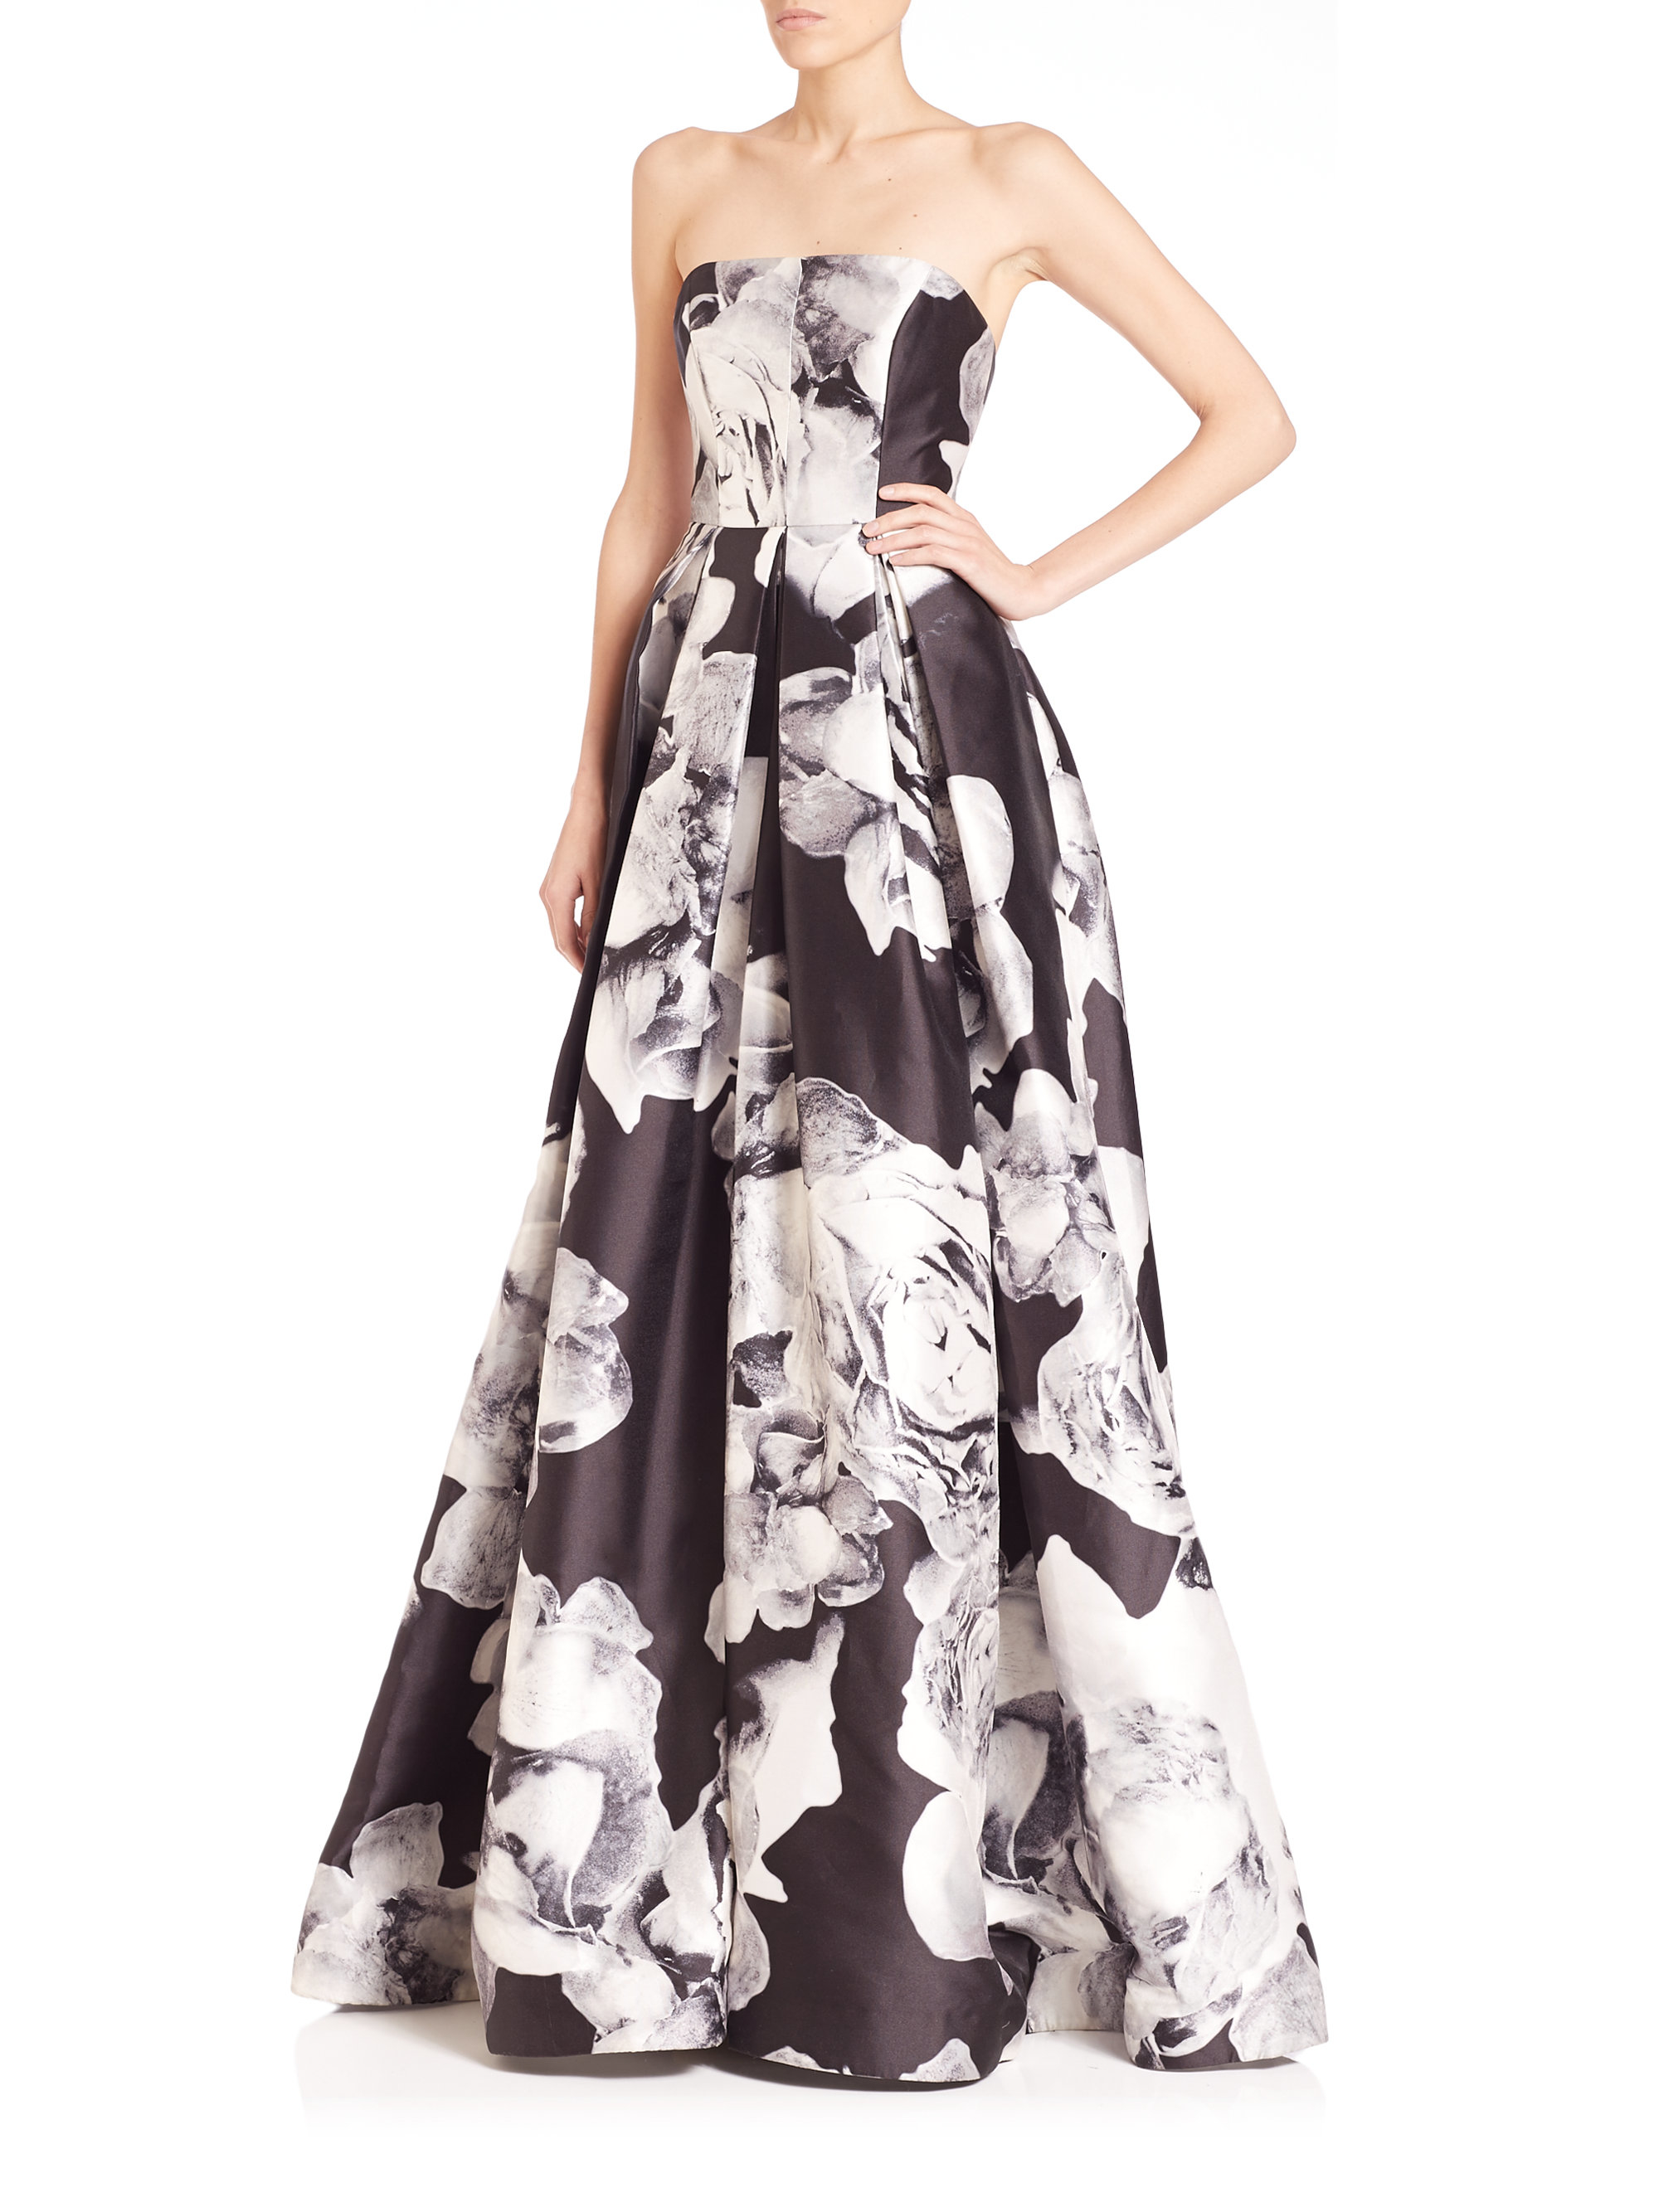 Floral Print Jacquard Gown Monique Lhuillier On Hot Sale With Mastercard cGjFMfO